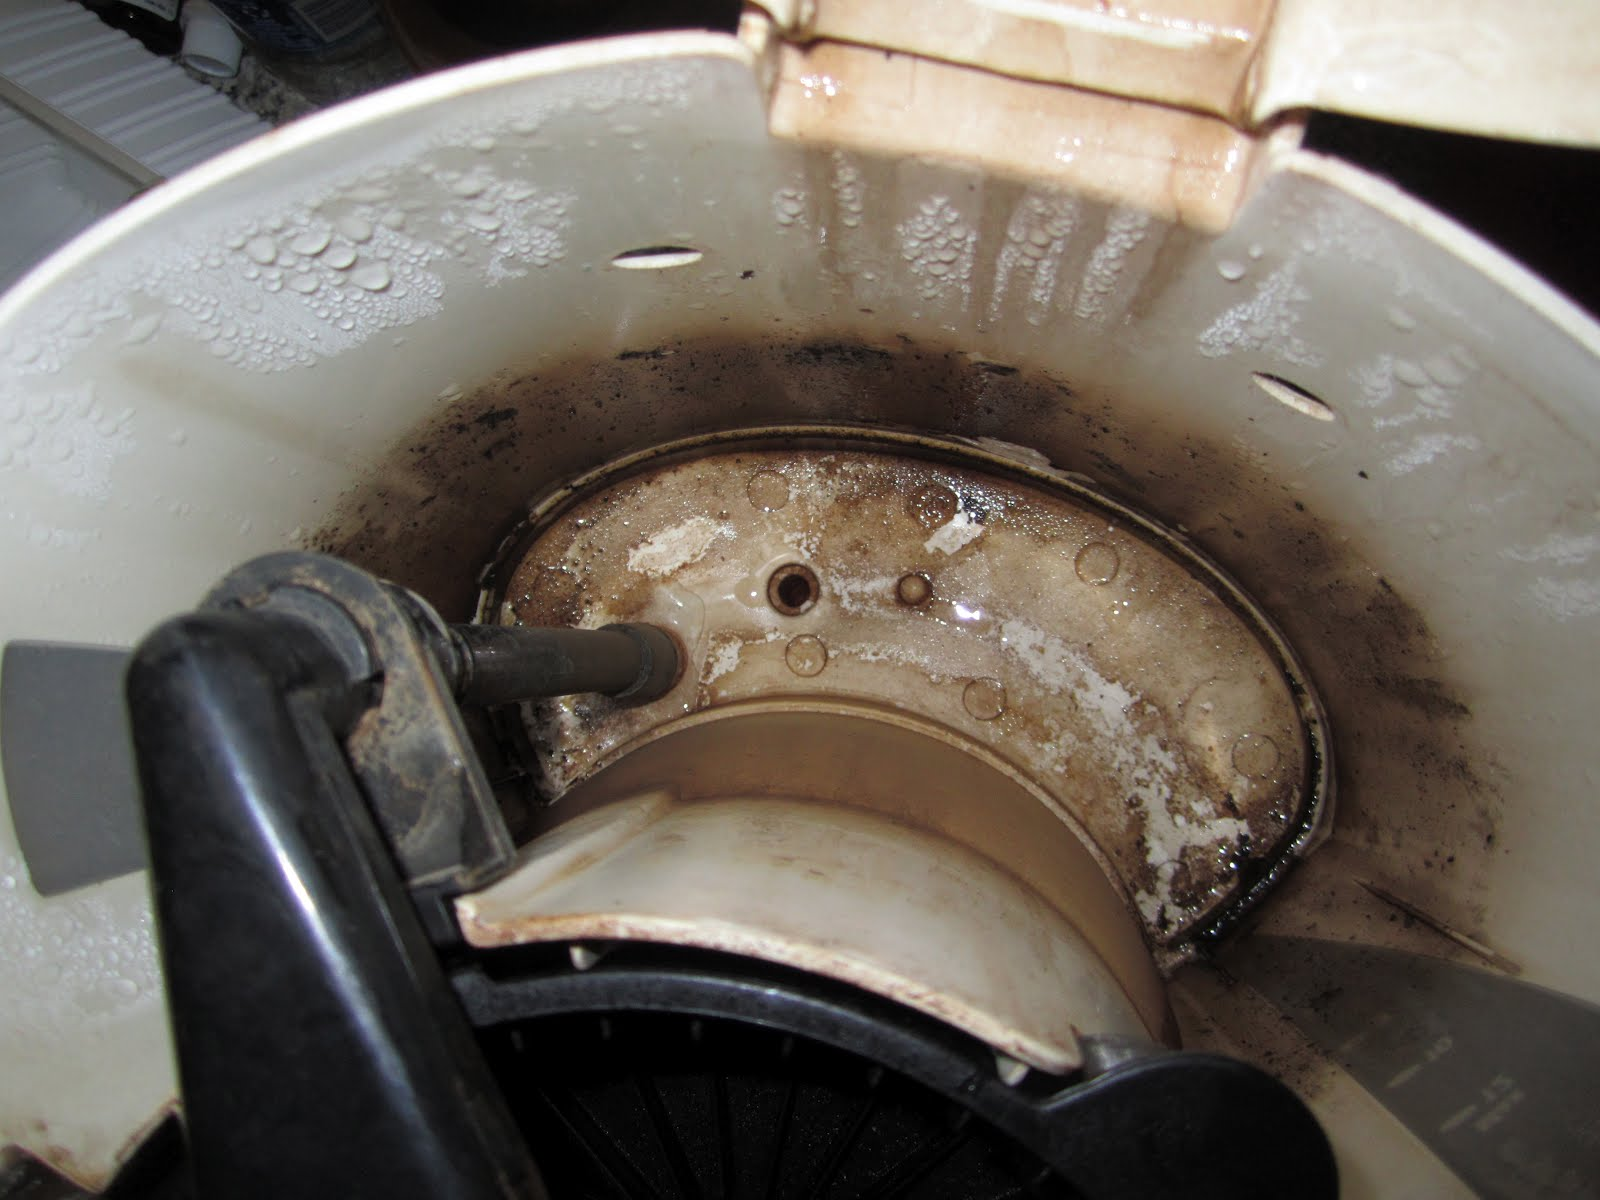 Coffee Maker Mold : Is Your Coffee Maker Really Clean? : Healthy Holistic Living